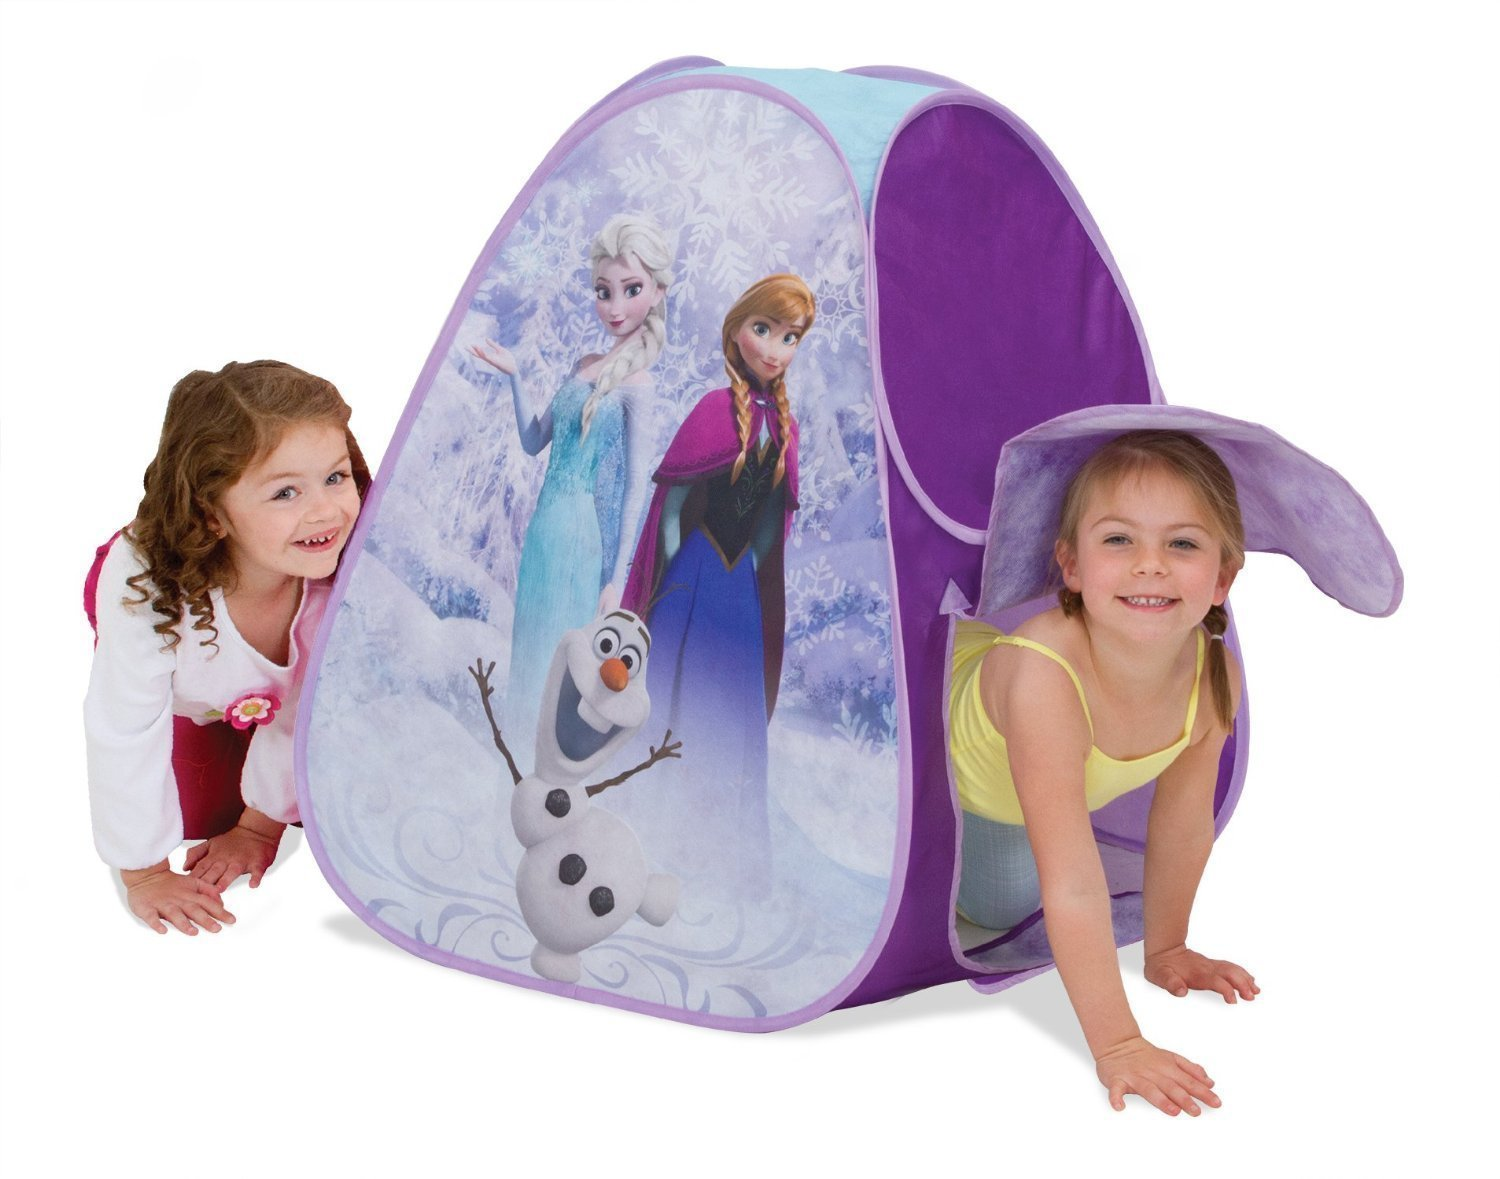 Amazon.com Disney FROZEN C& u0027N Play Tent (Play Structure) Toys u0026 Games  sc 1 st  Amazon.com & Amazon.com: Disney FROZEN Camp u0027N Play Tent (Play Structure): Toys ...